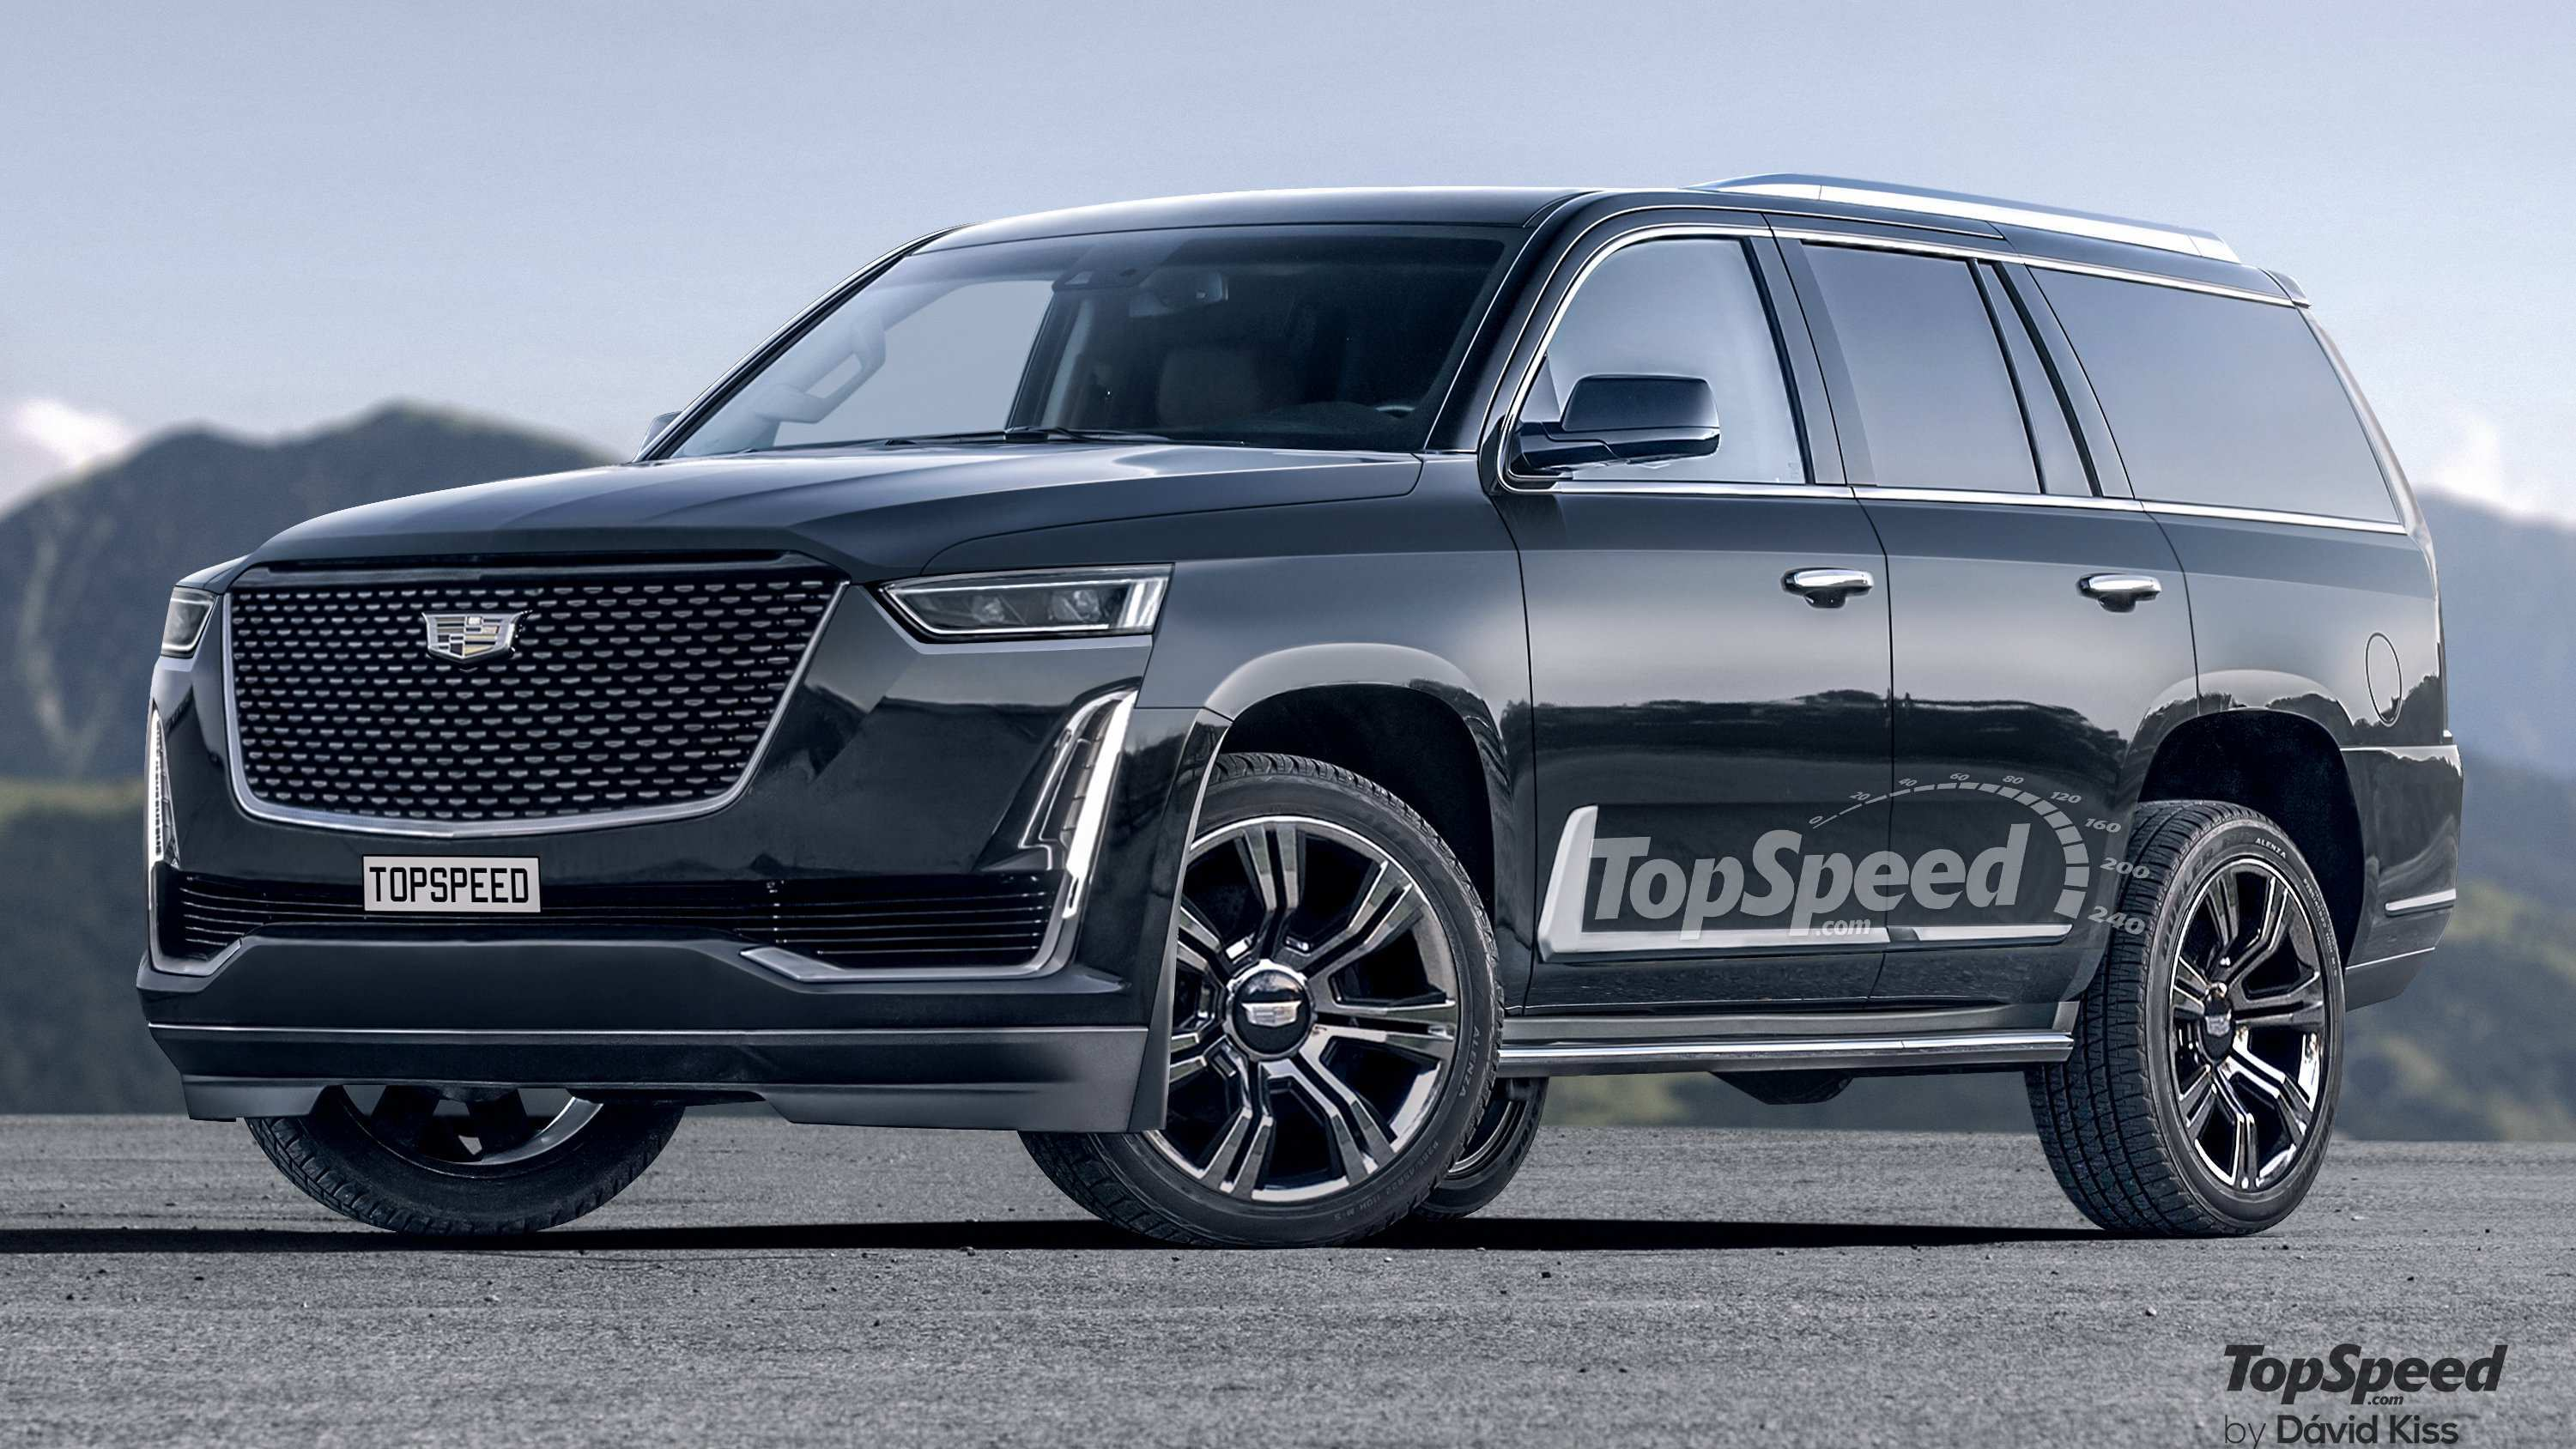 2020 cadillac escalade body style change - car review